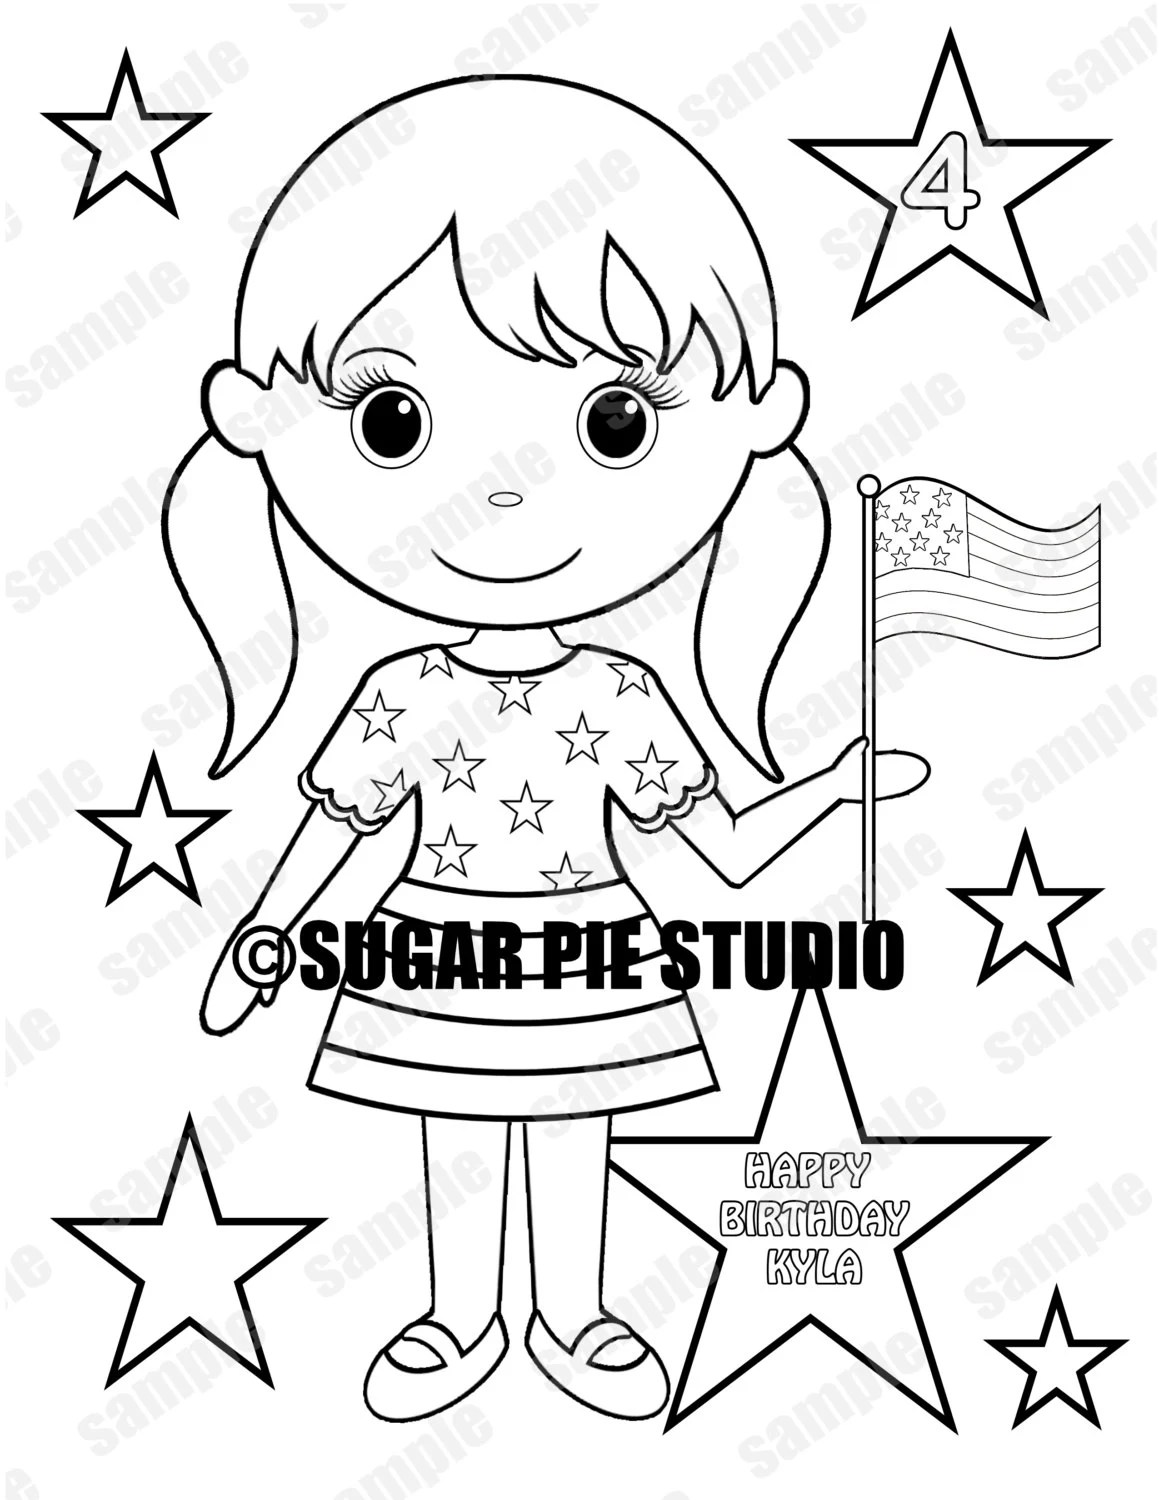 Patriotic 4th of july birthday coloring activity page PDF or